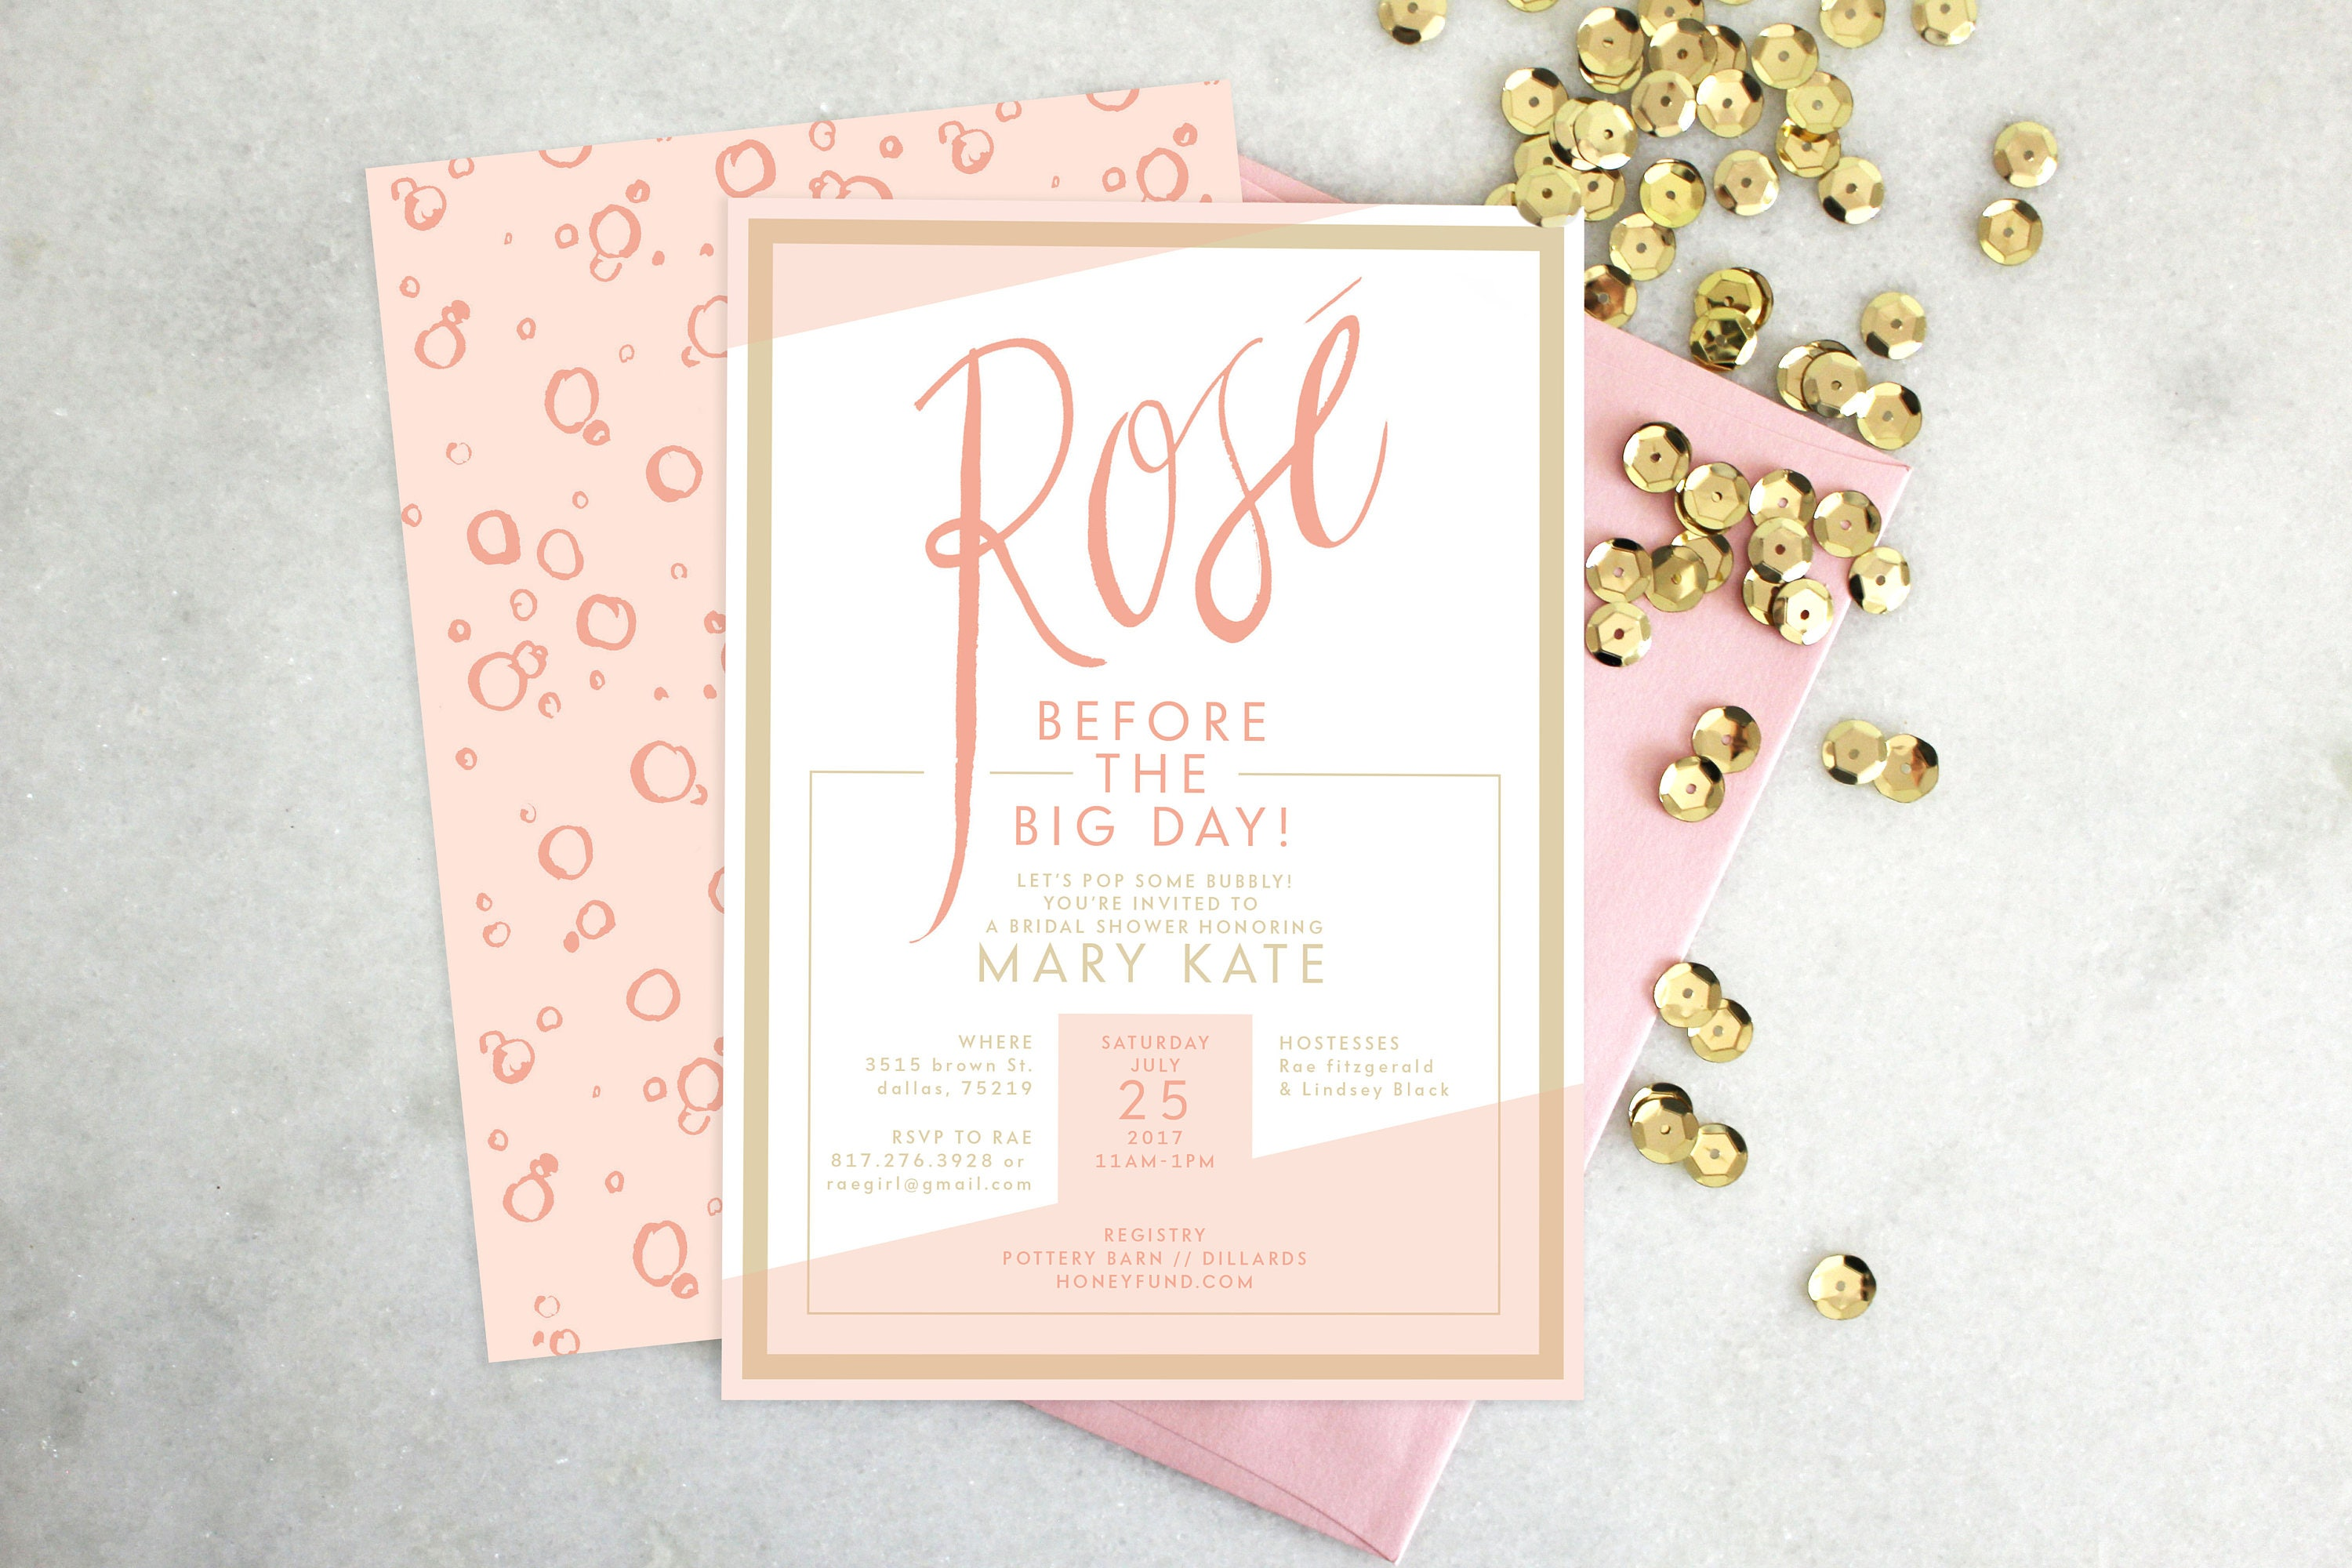 image relating to Printable Wedding Shower Invitations named PRINTABLE Bridal Shower Invitation Rosé